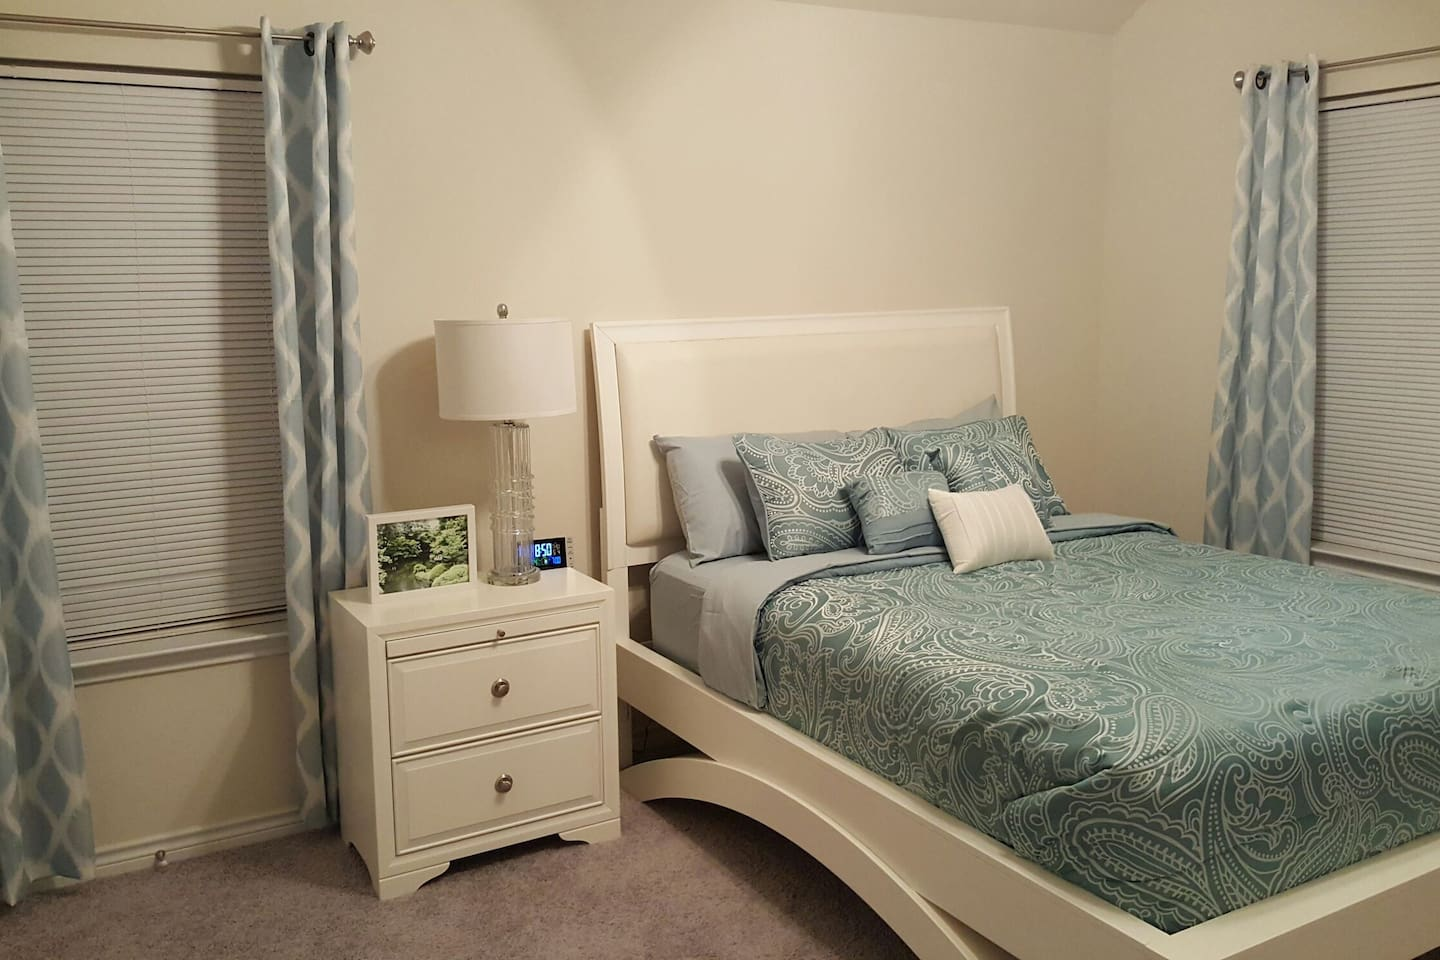 Spacious bedroom with plush bedding